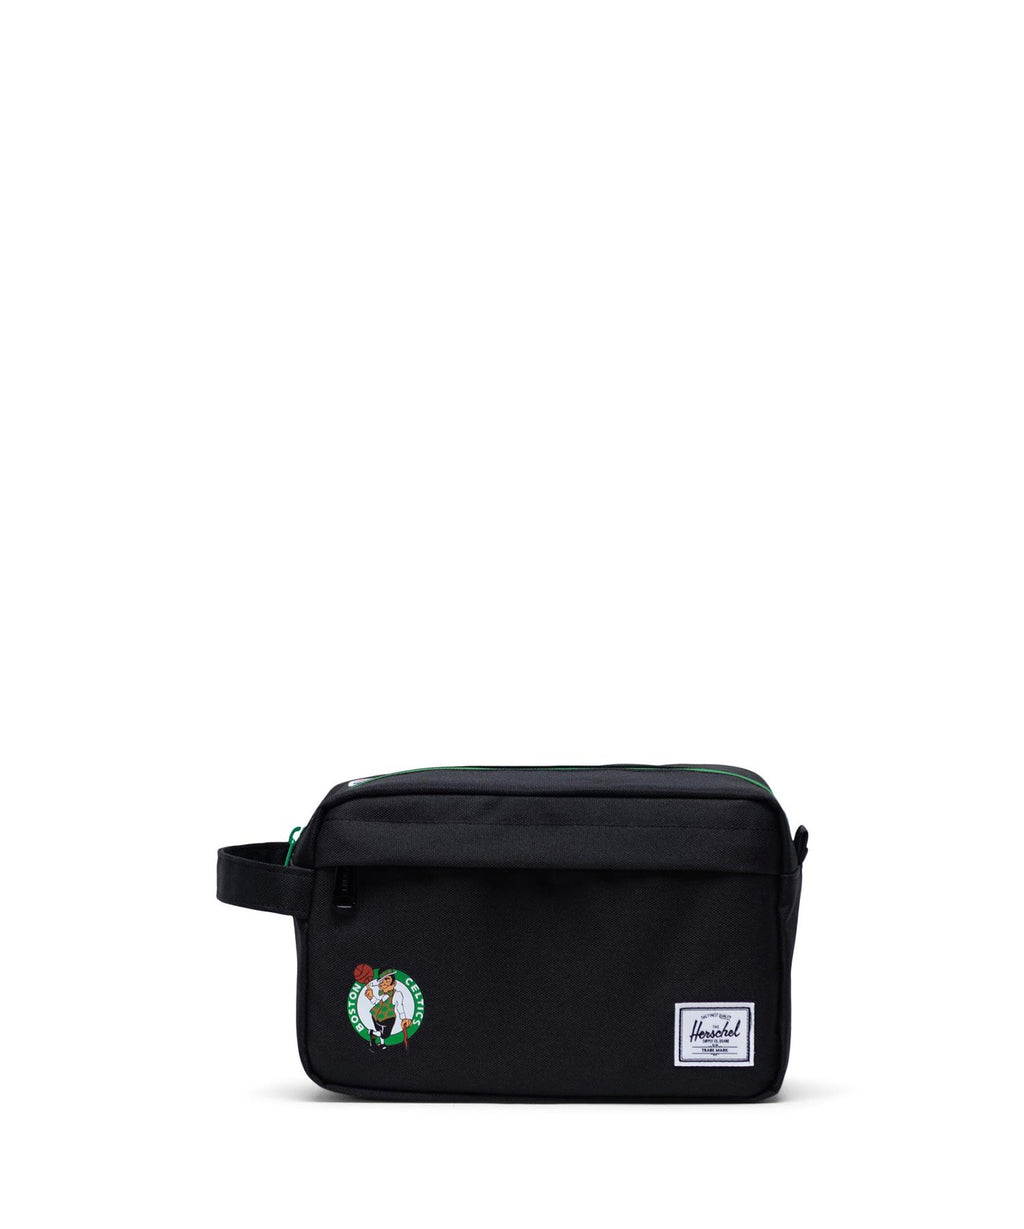 Boston Celtics Chapter Organizer Bag Black/Green